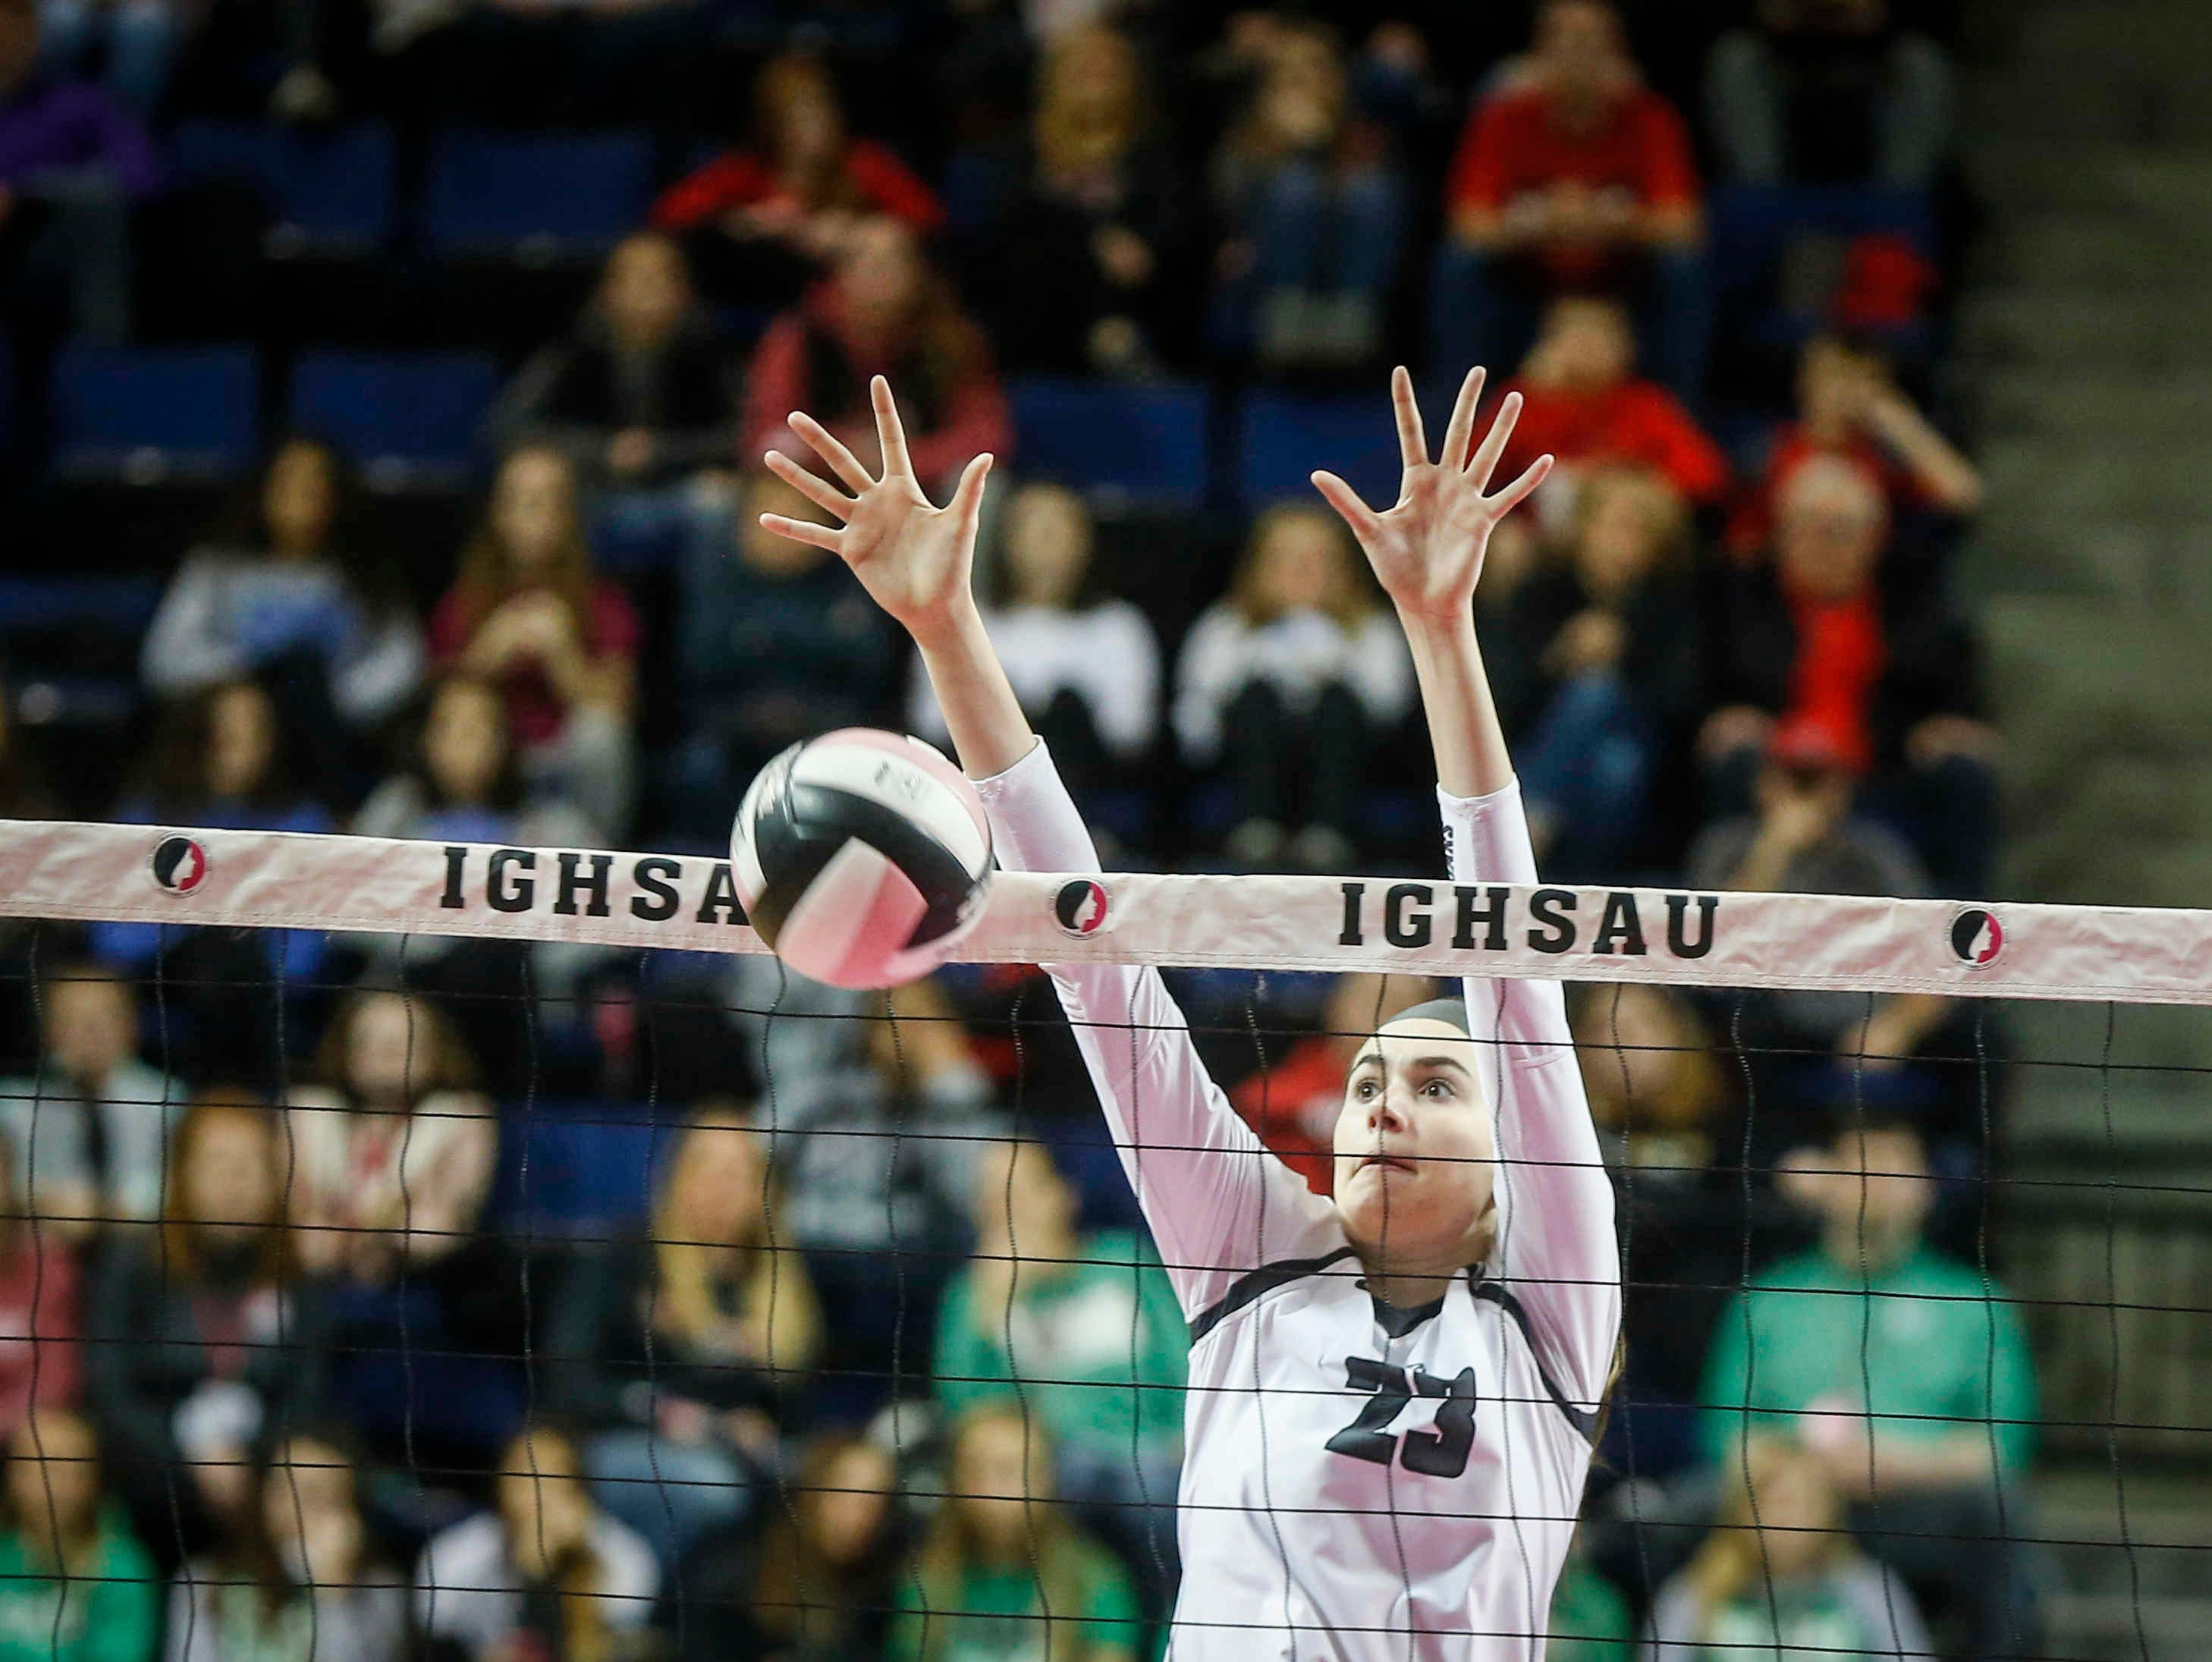 Ankeny Centennial's Megan Lively stops the ball at the net against Cedar Falls during the Class 5A state volleyball tournament championship game on Friday, Nov. 9, 2018, in Cedar Rapids.